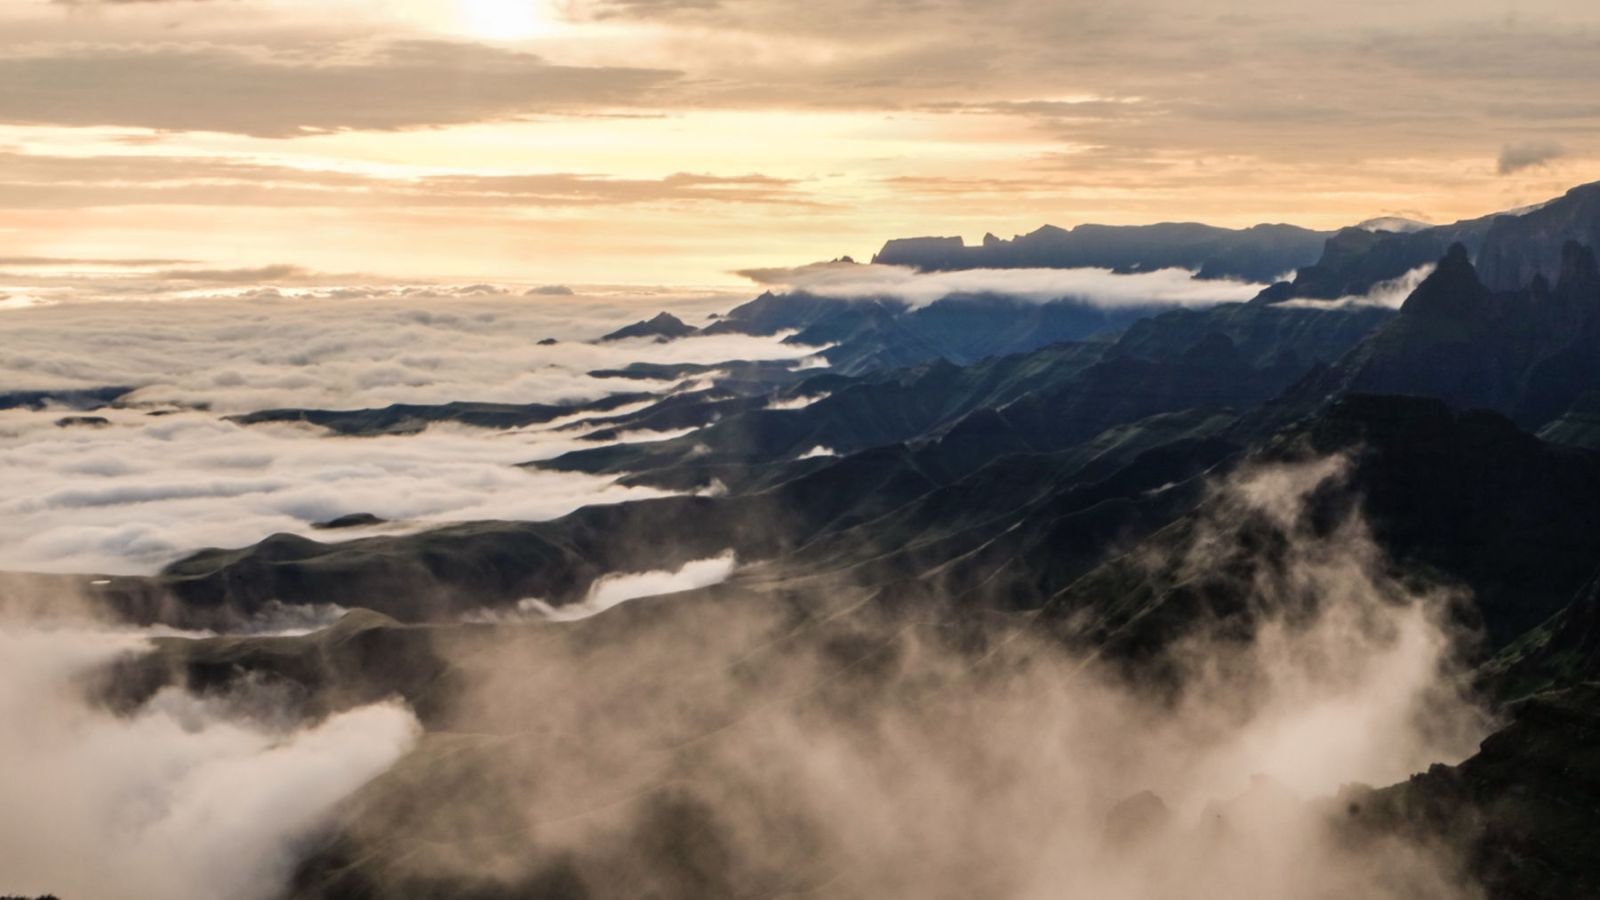 photo from above the clouds showing the sunset in the drakensberg mountains